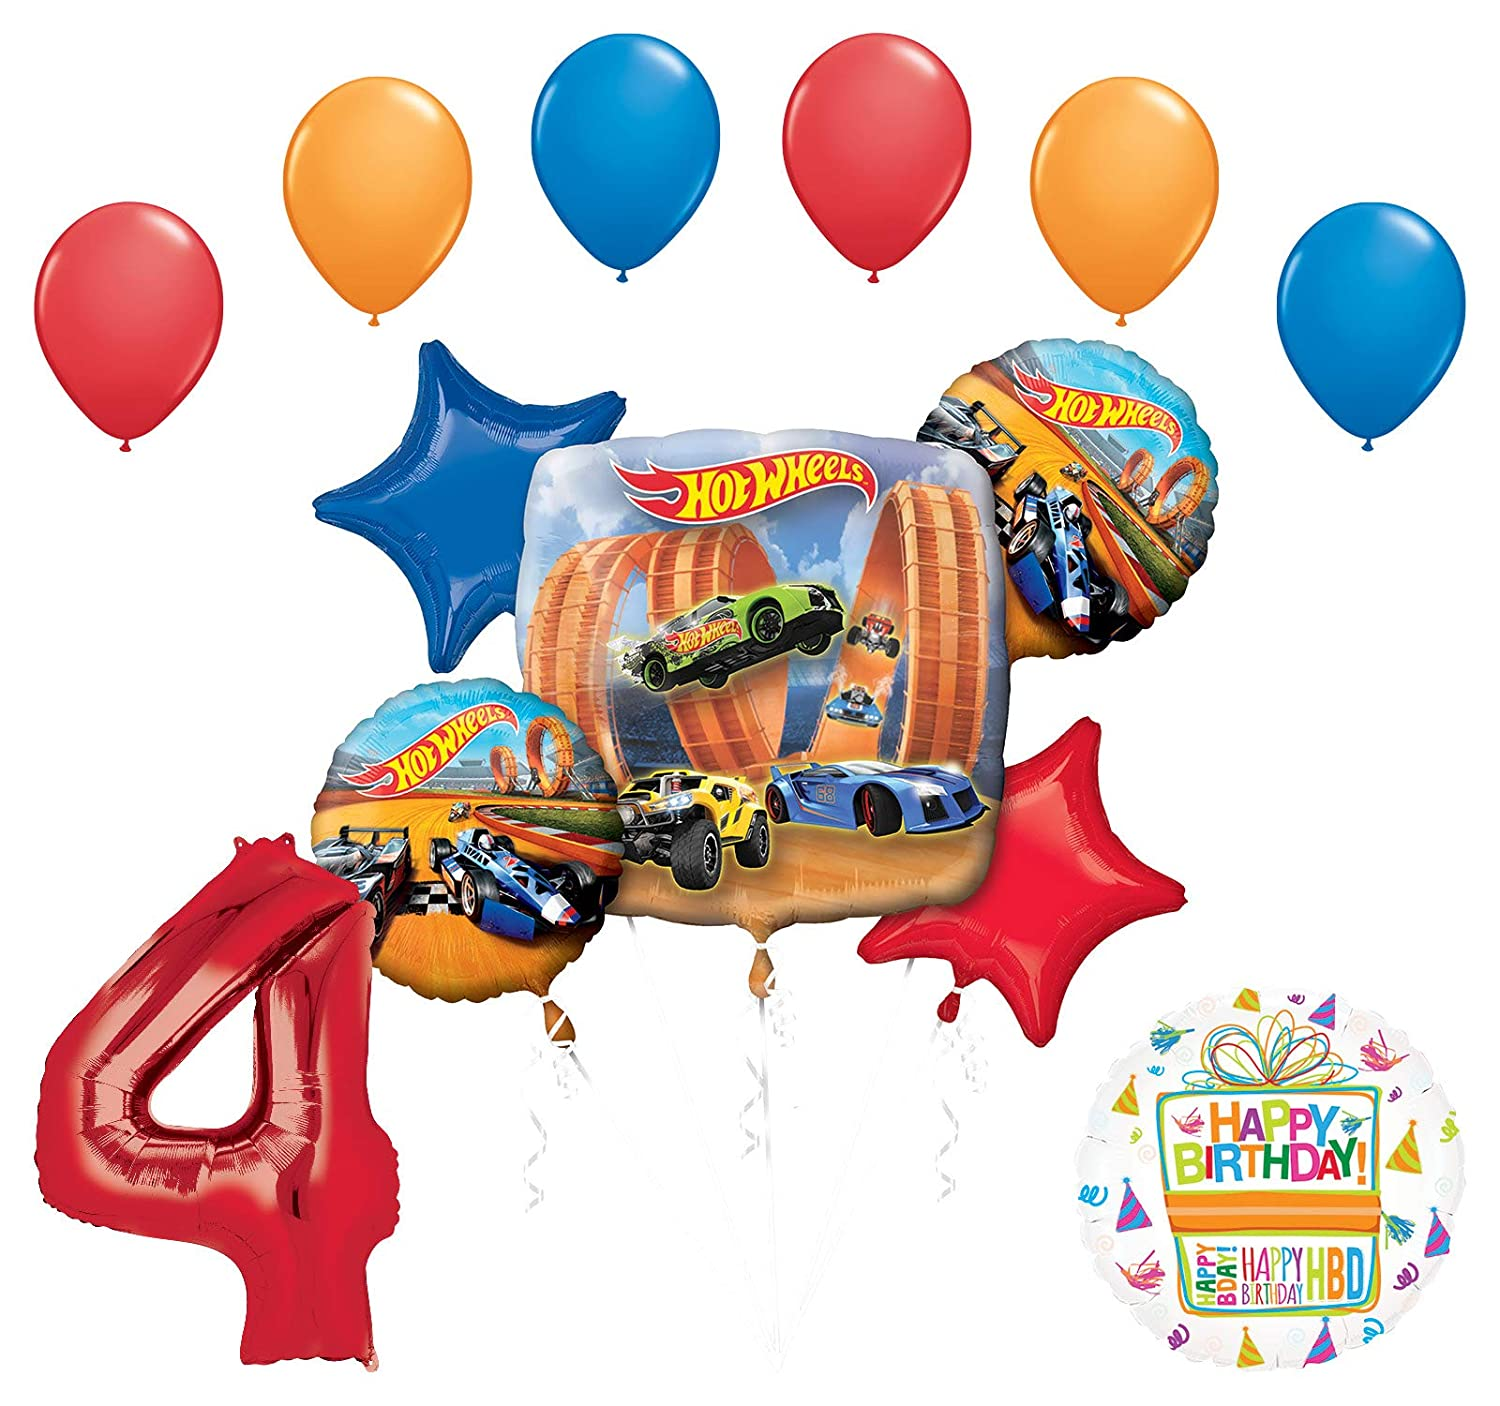 Amazon Mayflower Products Hot Wheels Party Supplies 4th Birthday Balloon Bouquet Decorations Toys Games